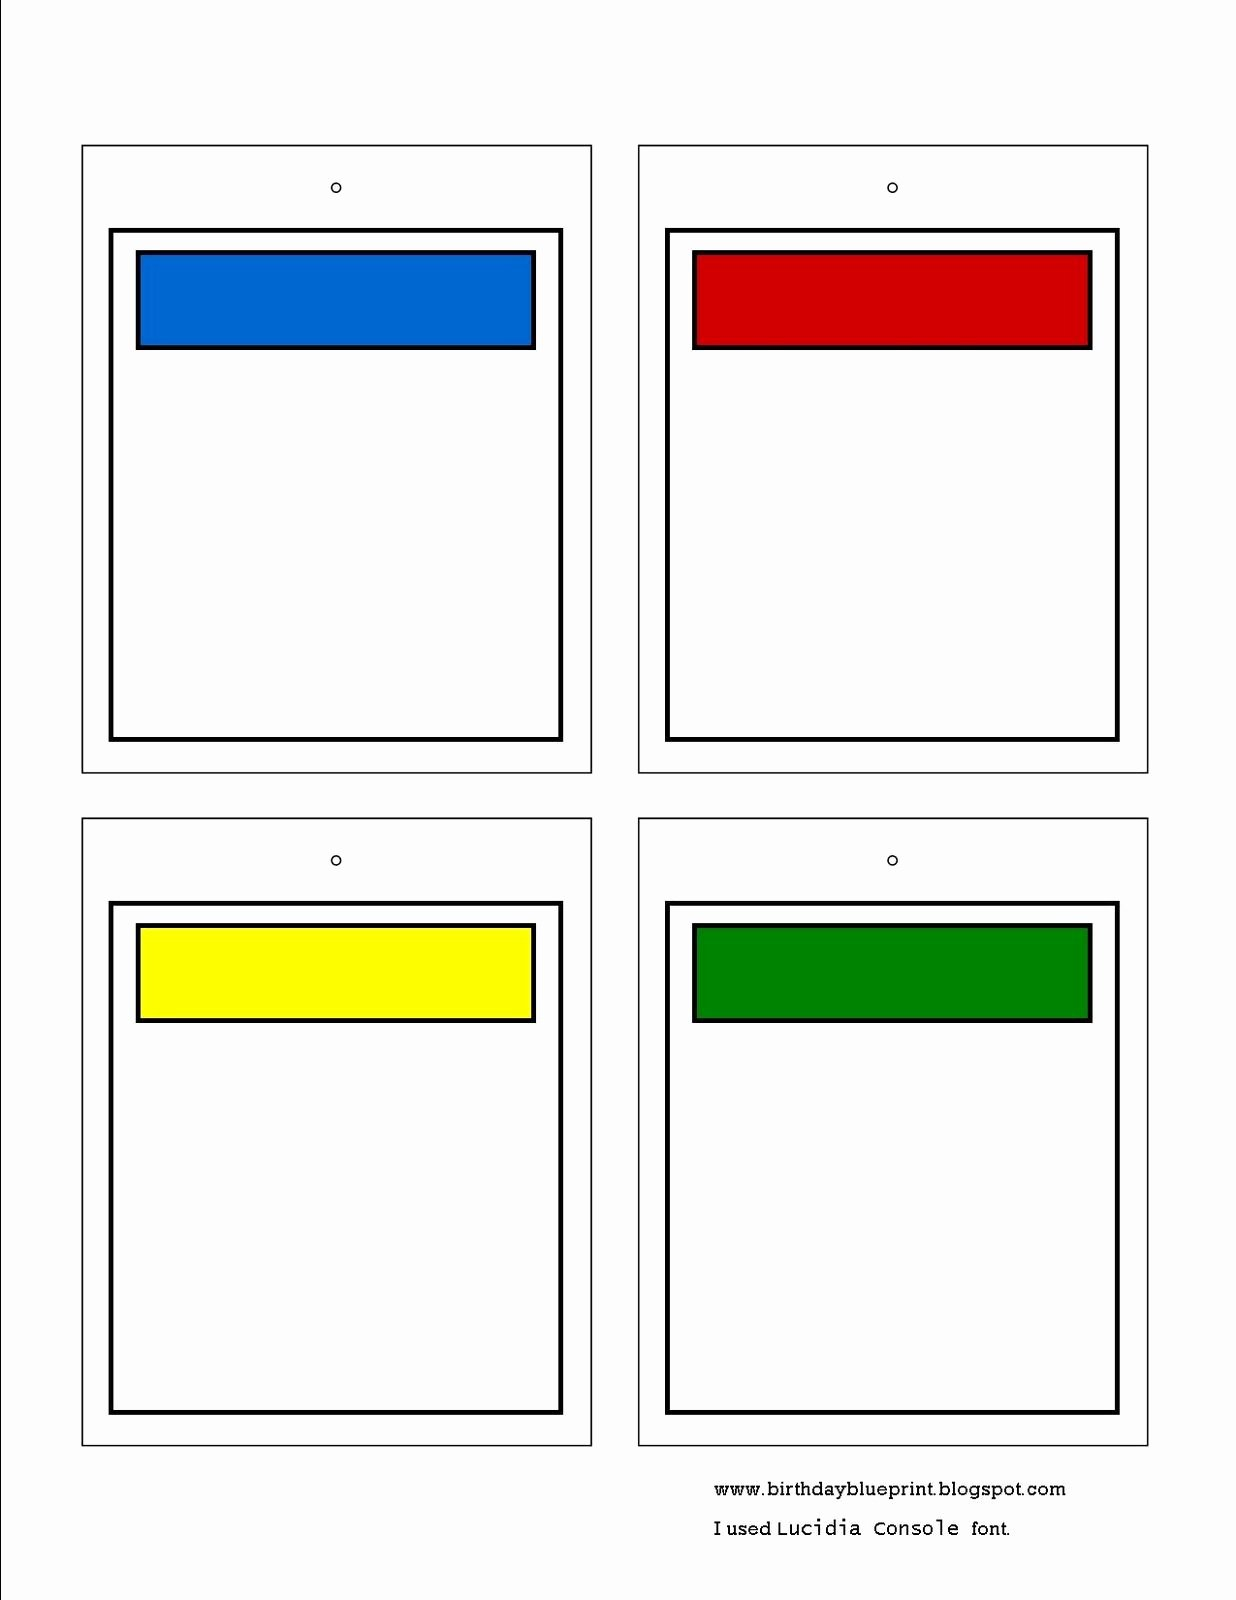 Monopoly Board Template New Birthday Blueprint Board Game Party Printable Tags